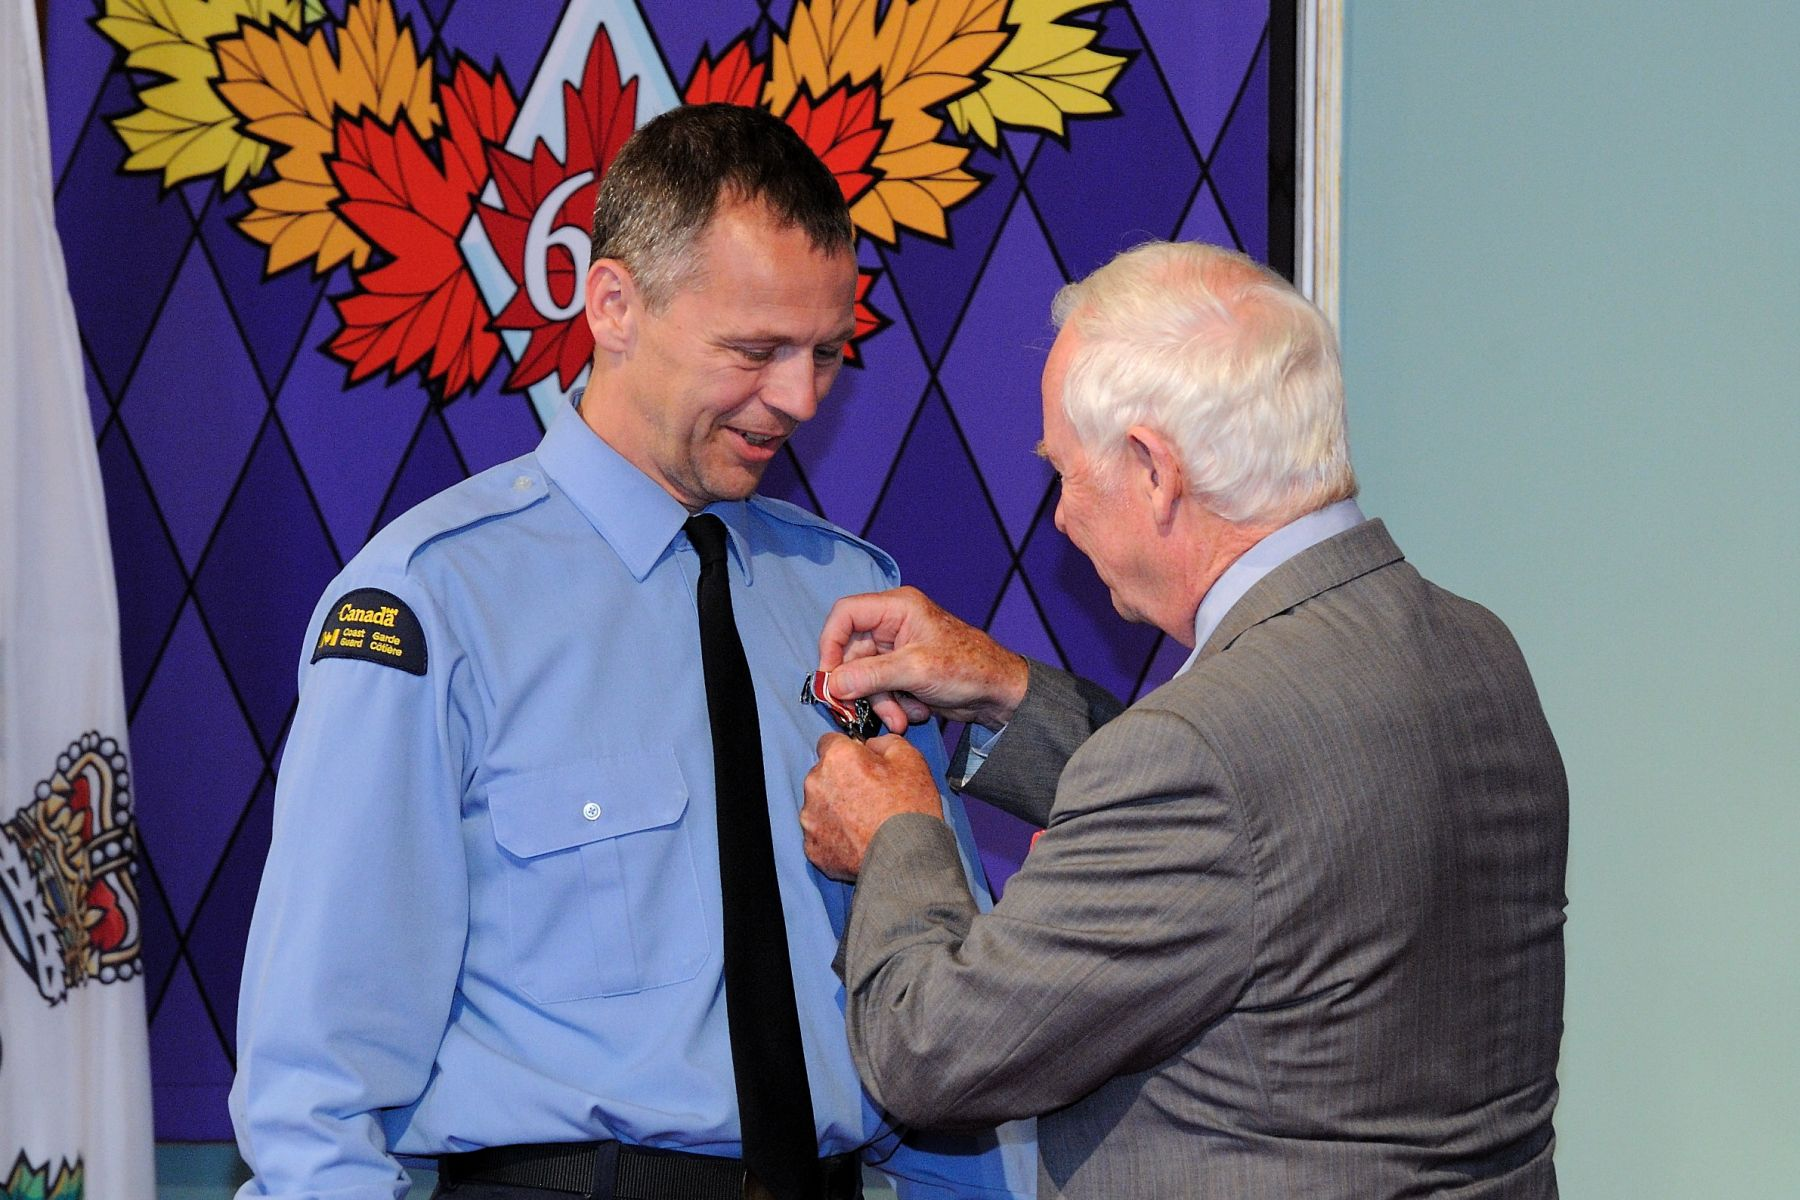 To mark the CCG's 50th anniversary, the Governor General presented the Queen Elizabeth II Diamond Jubilee Medal to representatives from Fisheries and Oceans Canada and from the CCG in recognition of their significant contributions and achievements.